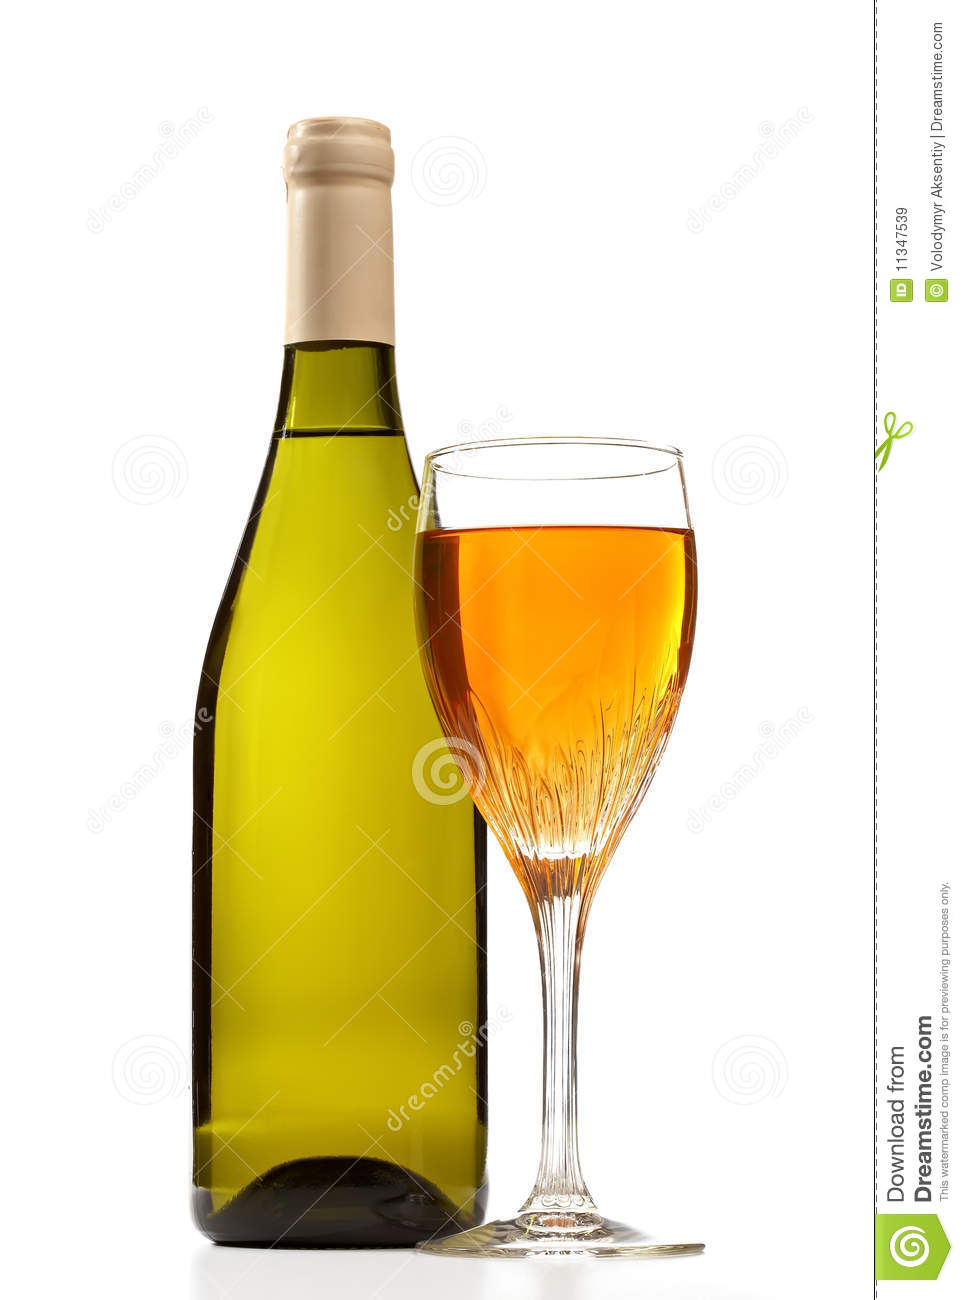 Wine bottle and glass with wine isolated royalty free for Wine bottle glass